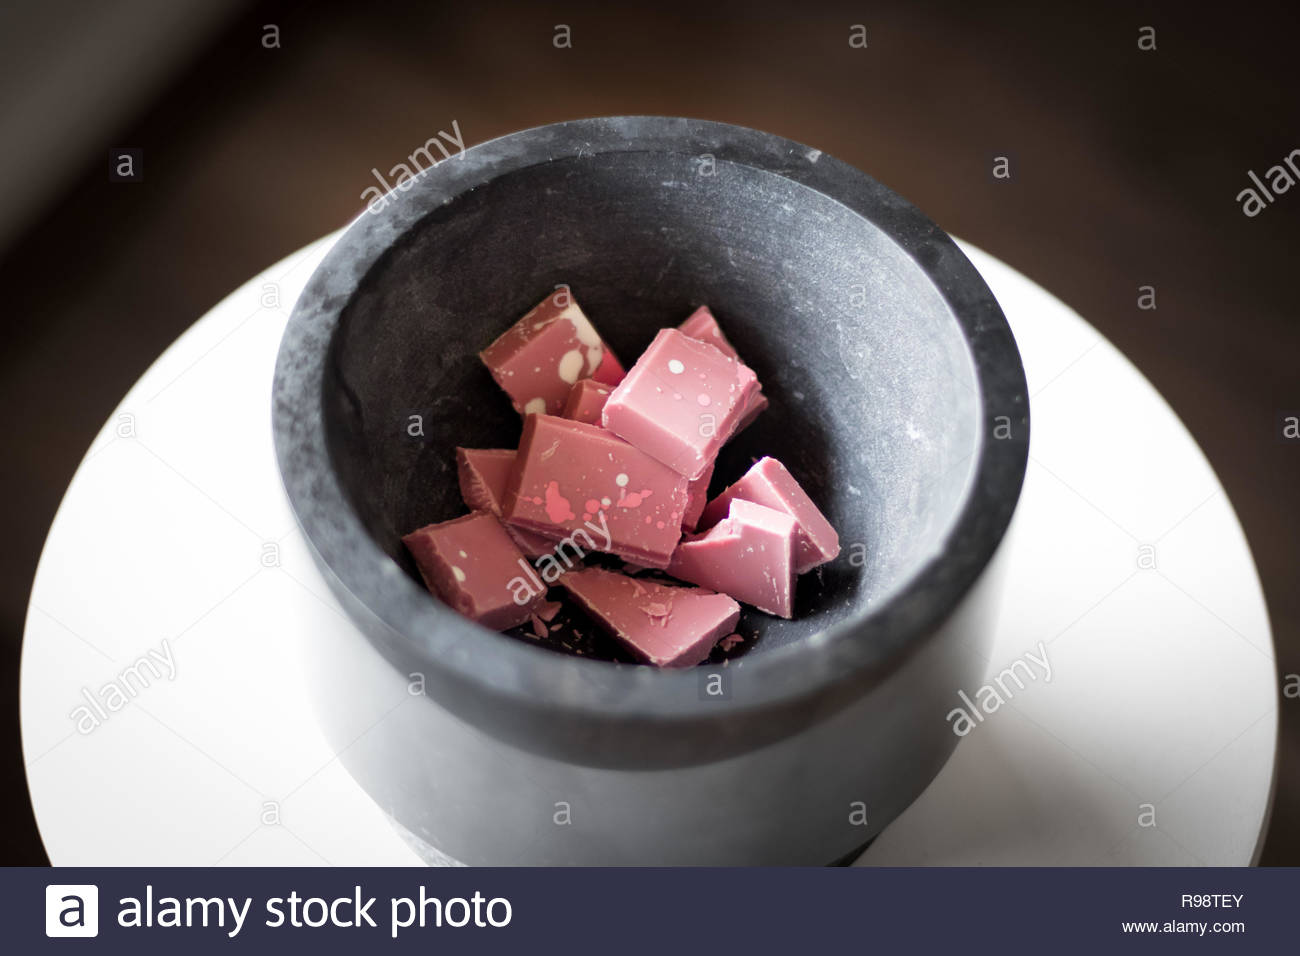 Broken and shattered pieces of ruby red chocolate in a round charcoal stone ceramic bowl. White and brown background. Speckled chocolate. - Stock Image